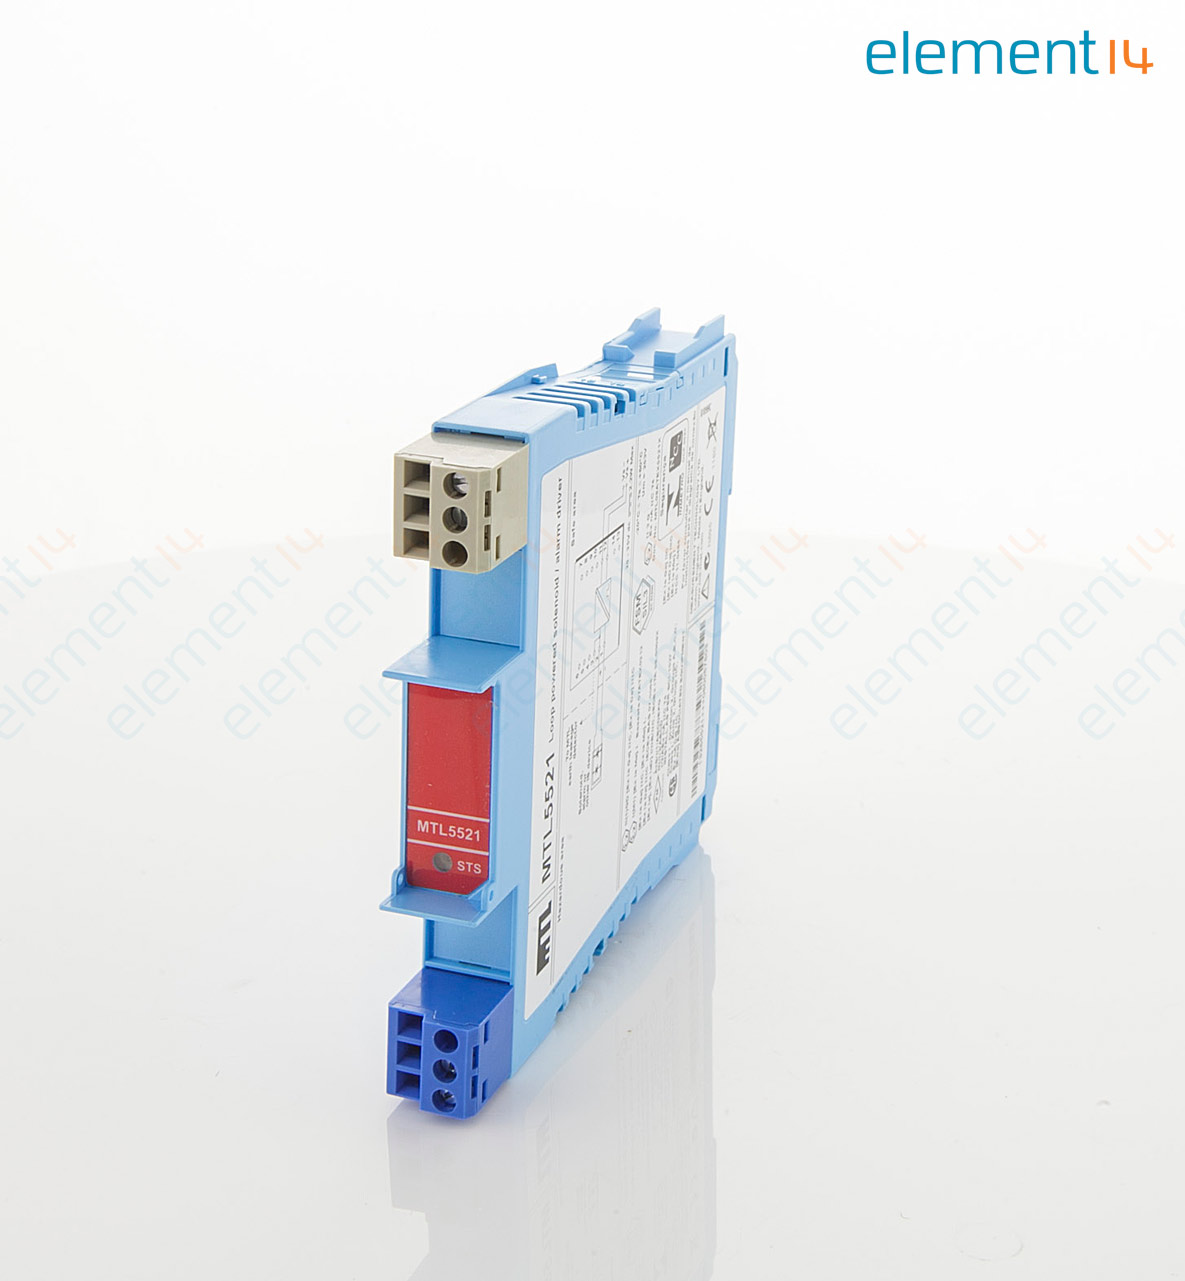 Remarkable Mtl5521 Mtl Surge Technologies Isolated Barrier 1 Channels 20 Vdc Wiring 101 Orsalhahutechinfo